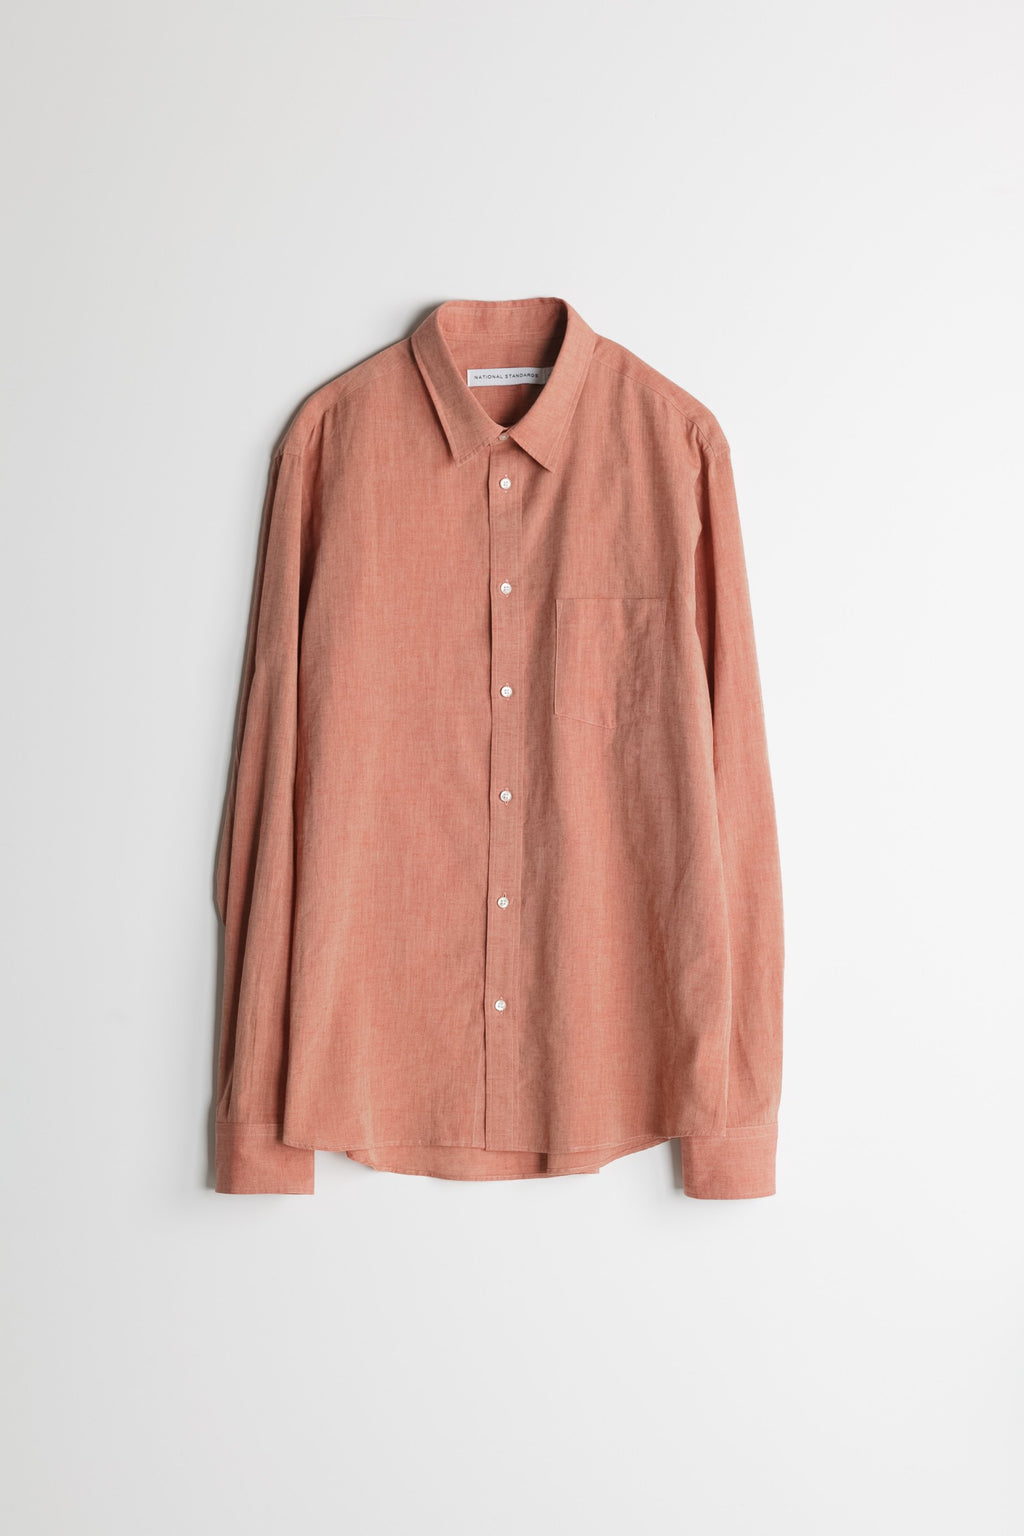 japanese-natural-chambray-in-red 05